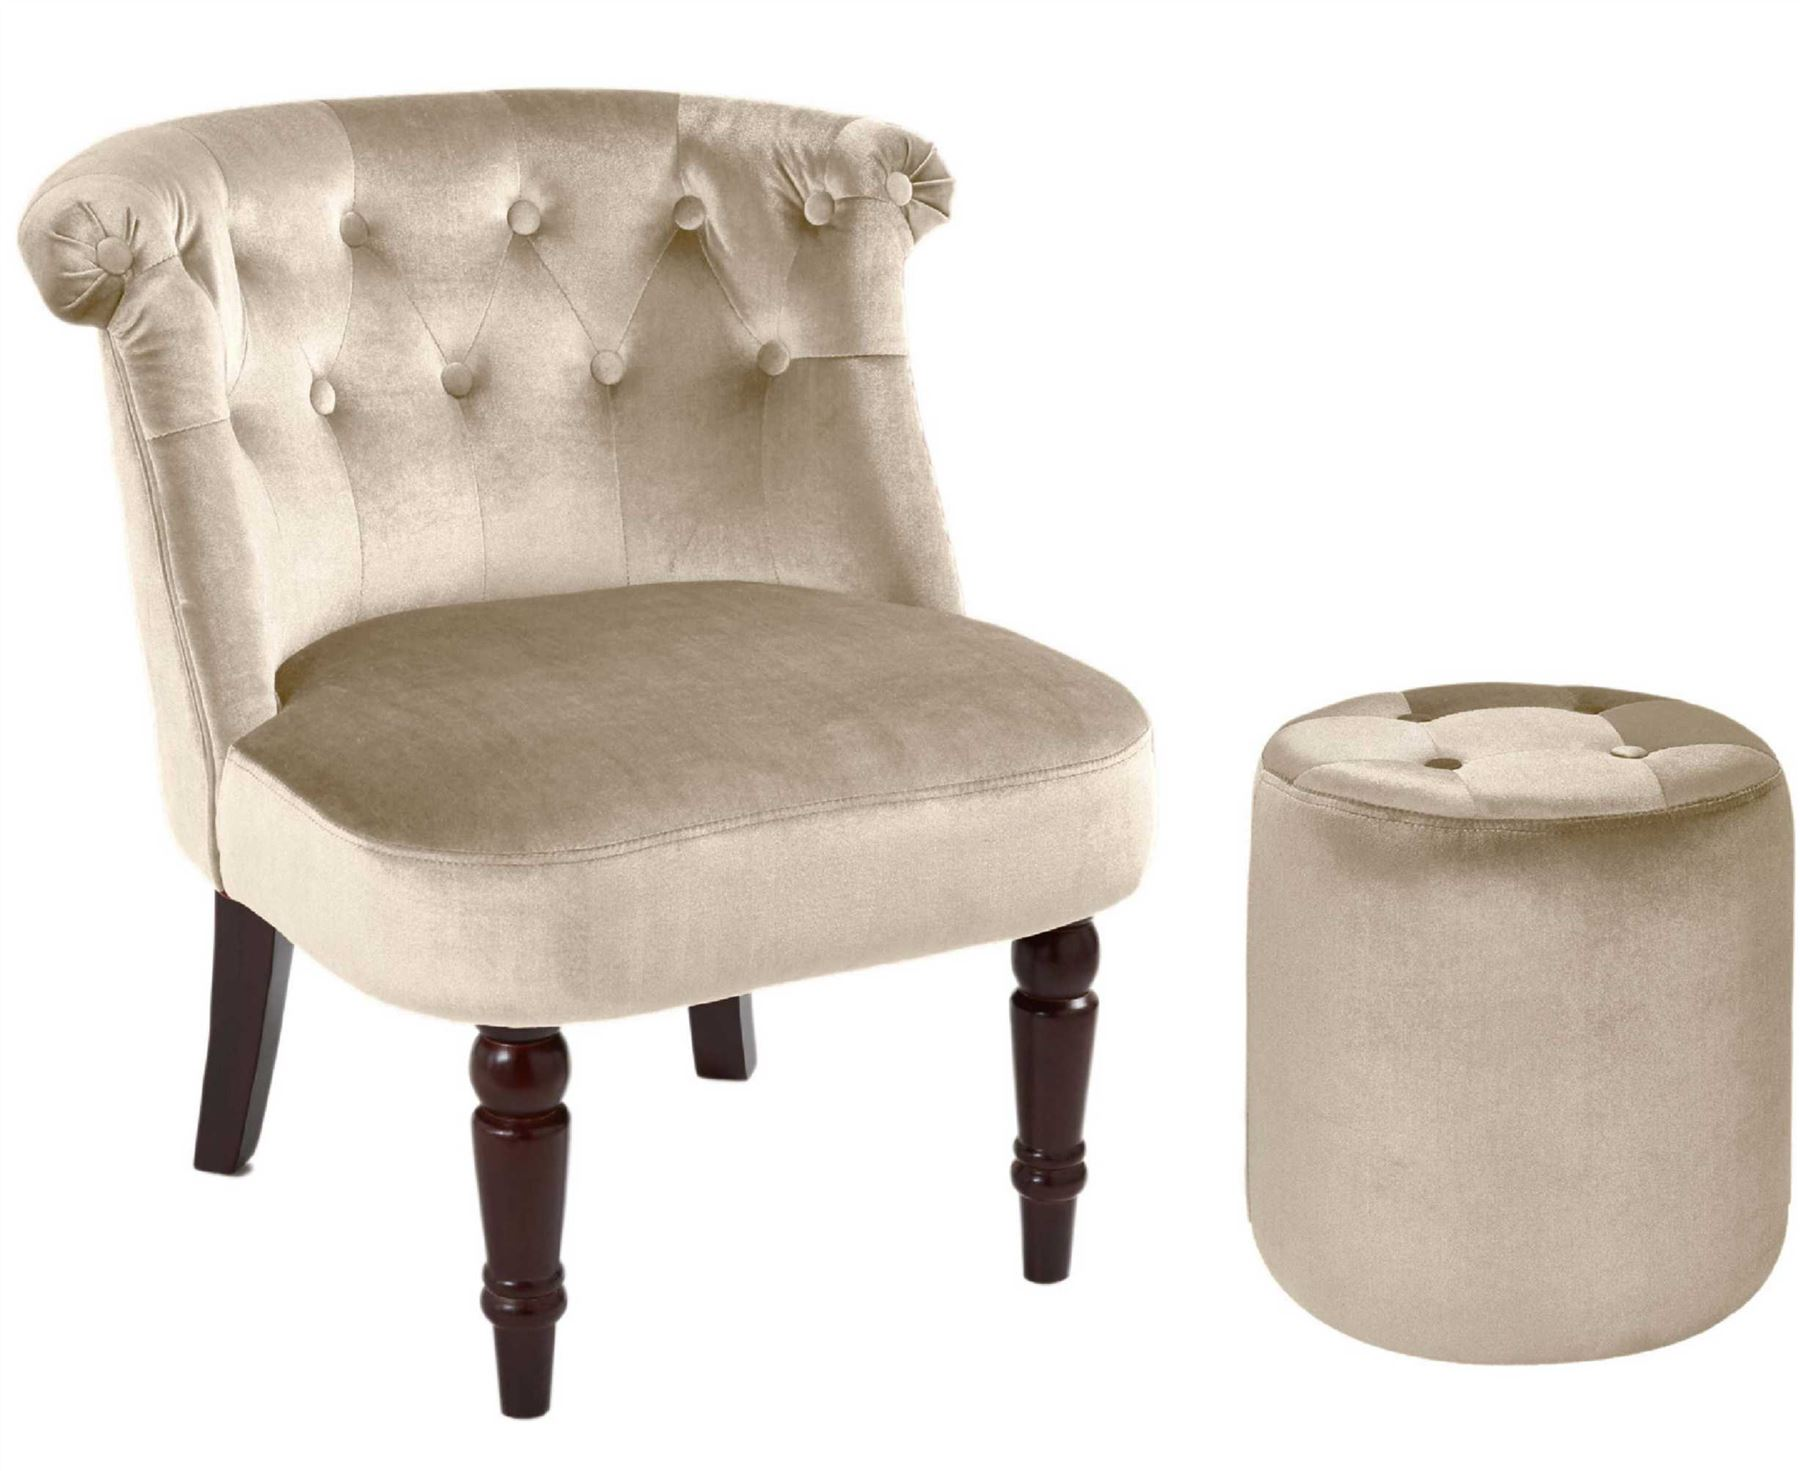 Chairs For Bad Backs Home: Buttoned Back Chair Footstool Bedroom Home Living Room